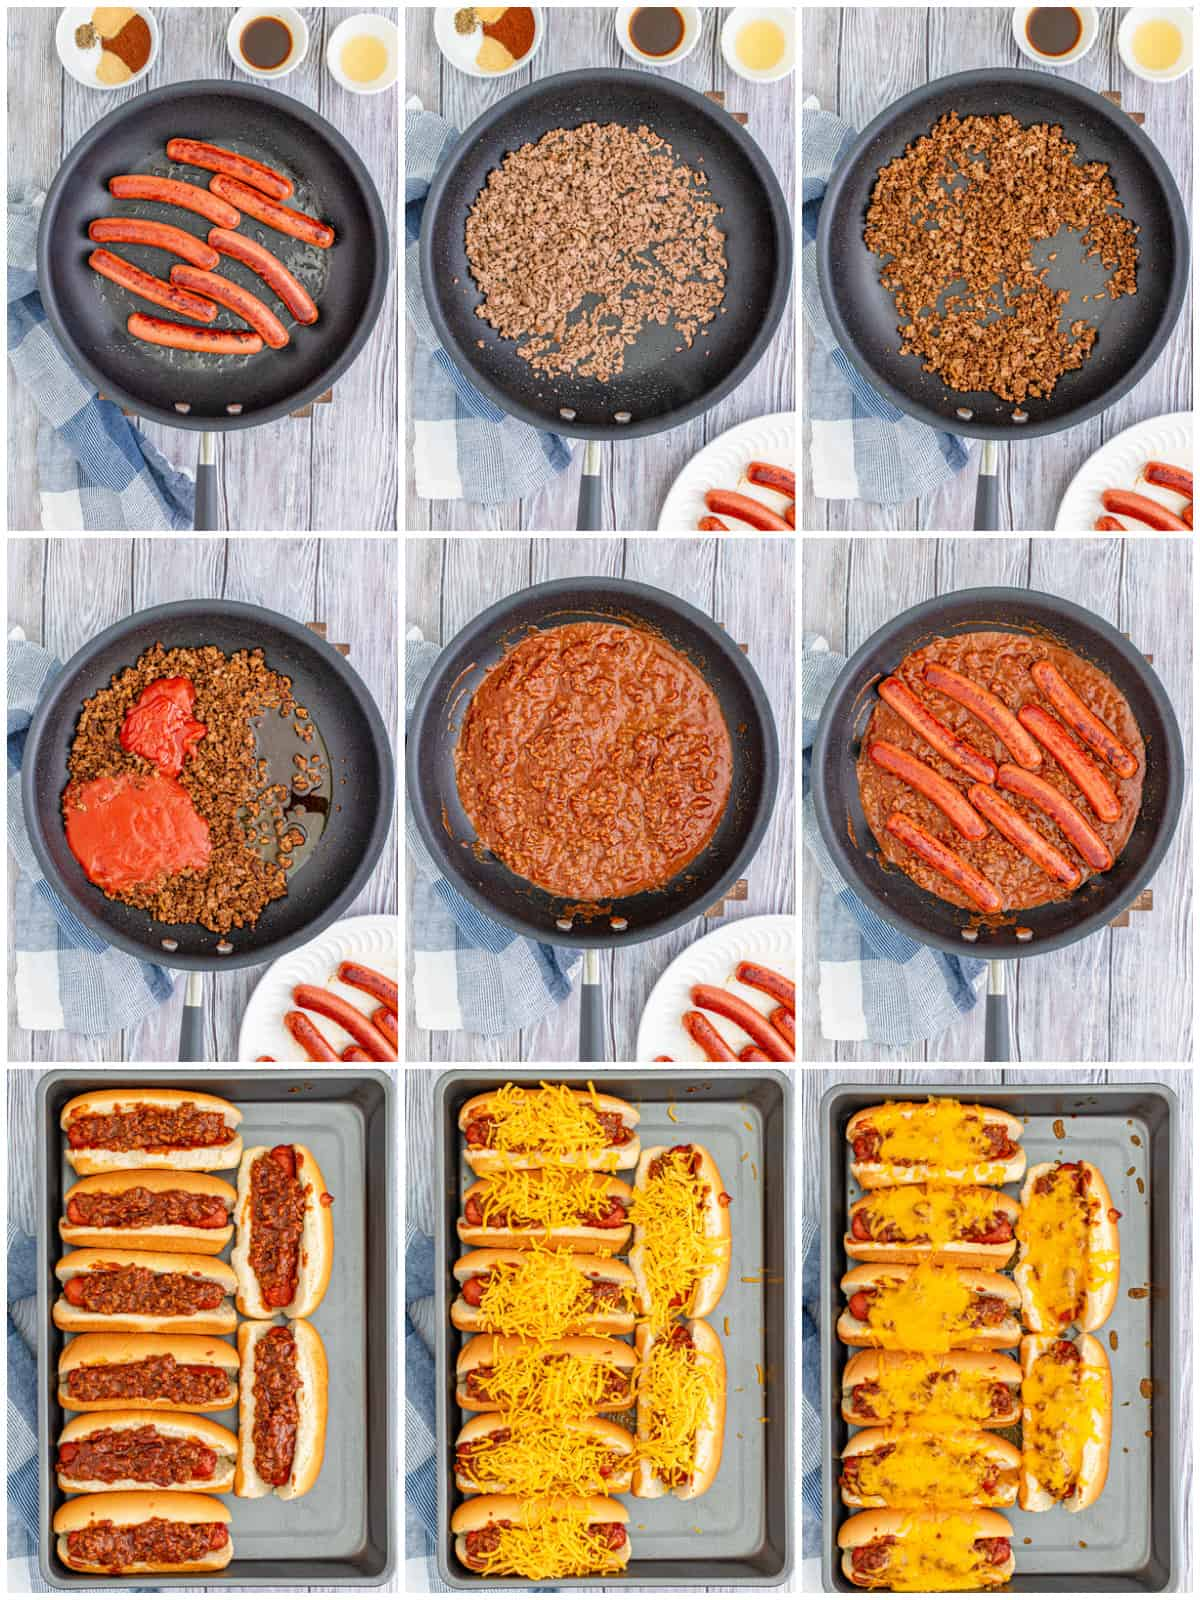 Step by step photos on now to make Chili Dogs